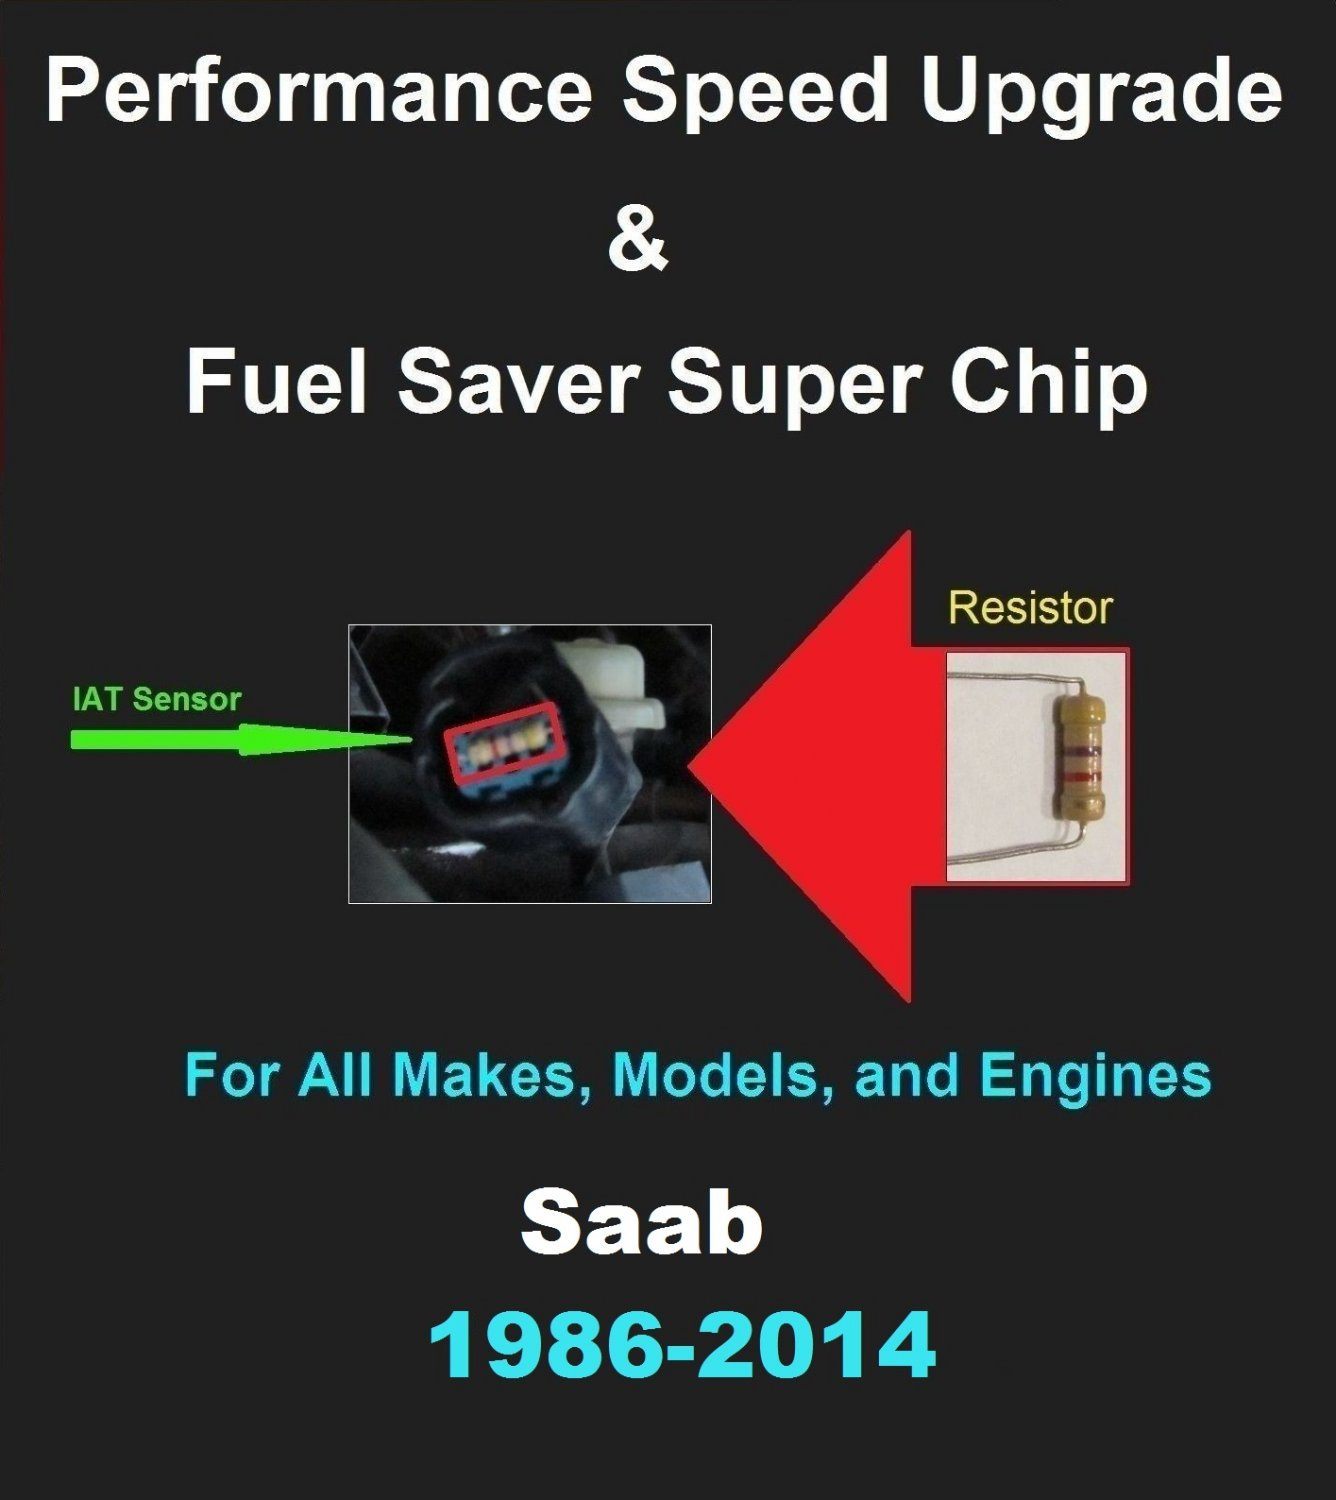 Saab Performance IAT Sensor Resistor Chip Mod Kit Increase MPG HP Speed Power Super Fuel Gas Saver